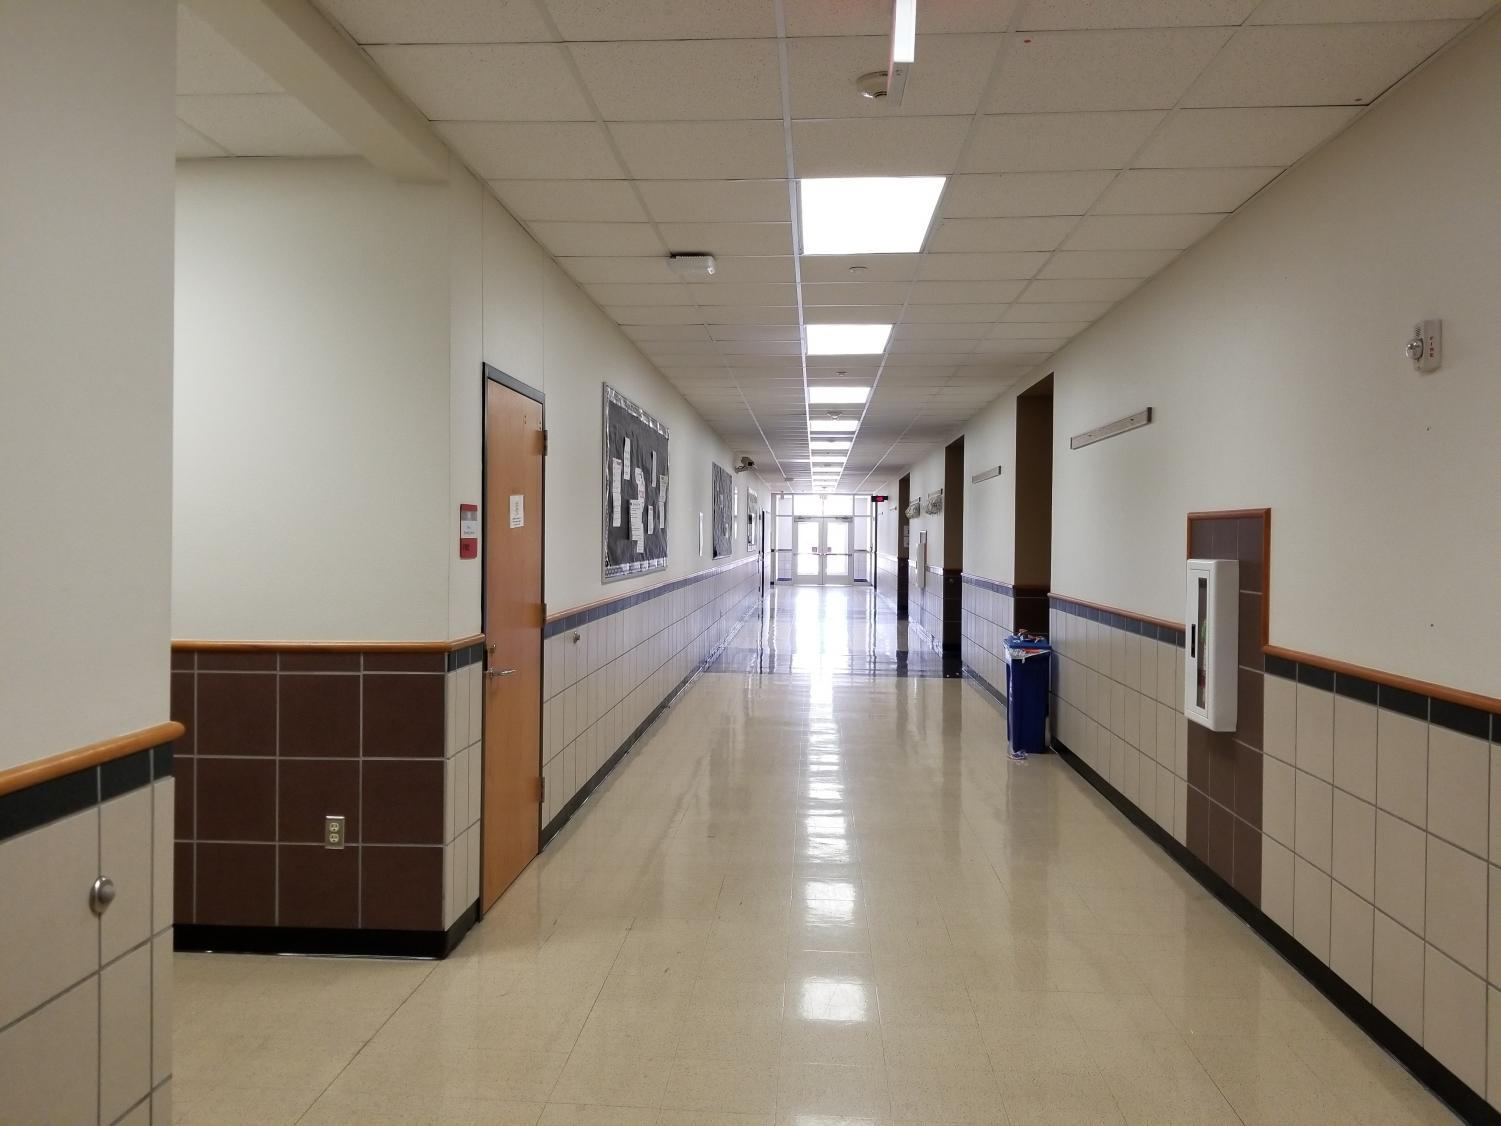 The school's hallways will be emptier than usual Wednesday morning as students not taking STAAR or AP tests do not have to arrive until 12:30 p.m. Students with AP tests must still arrive before the times of their tests.